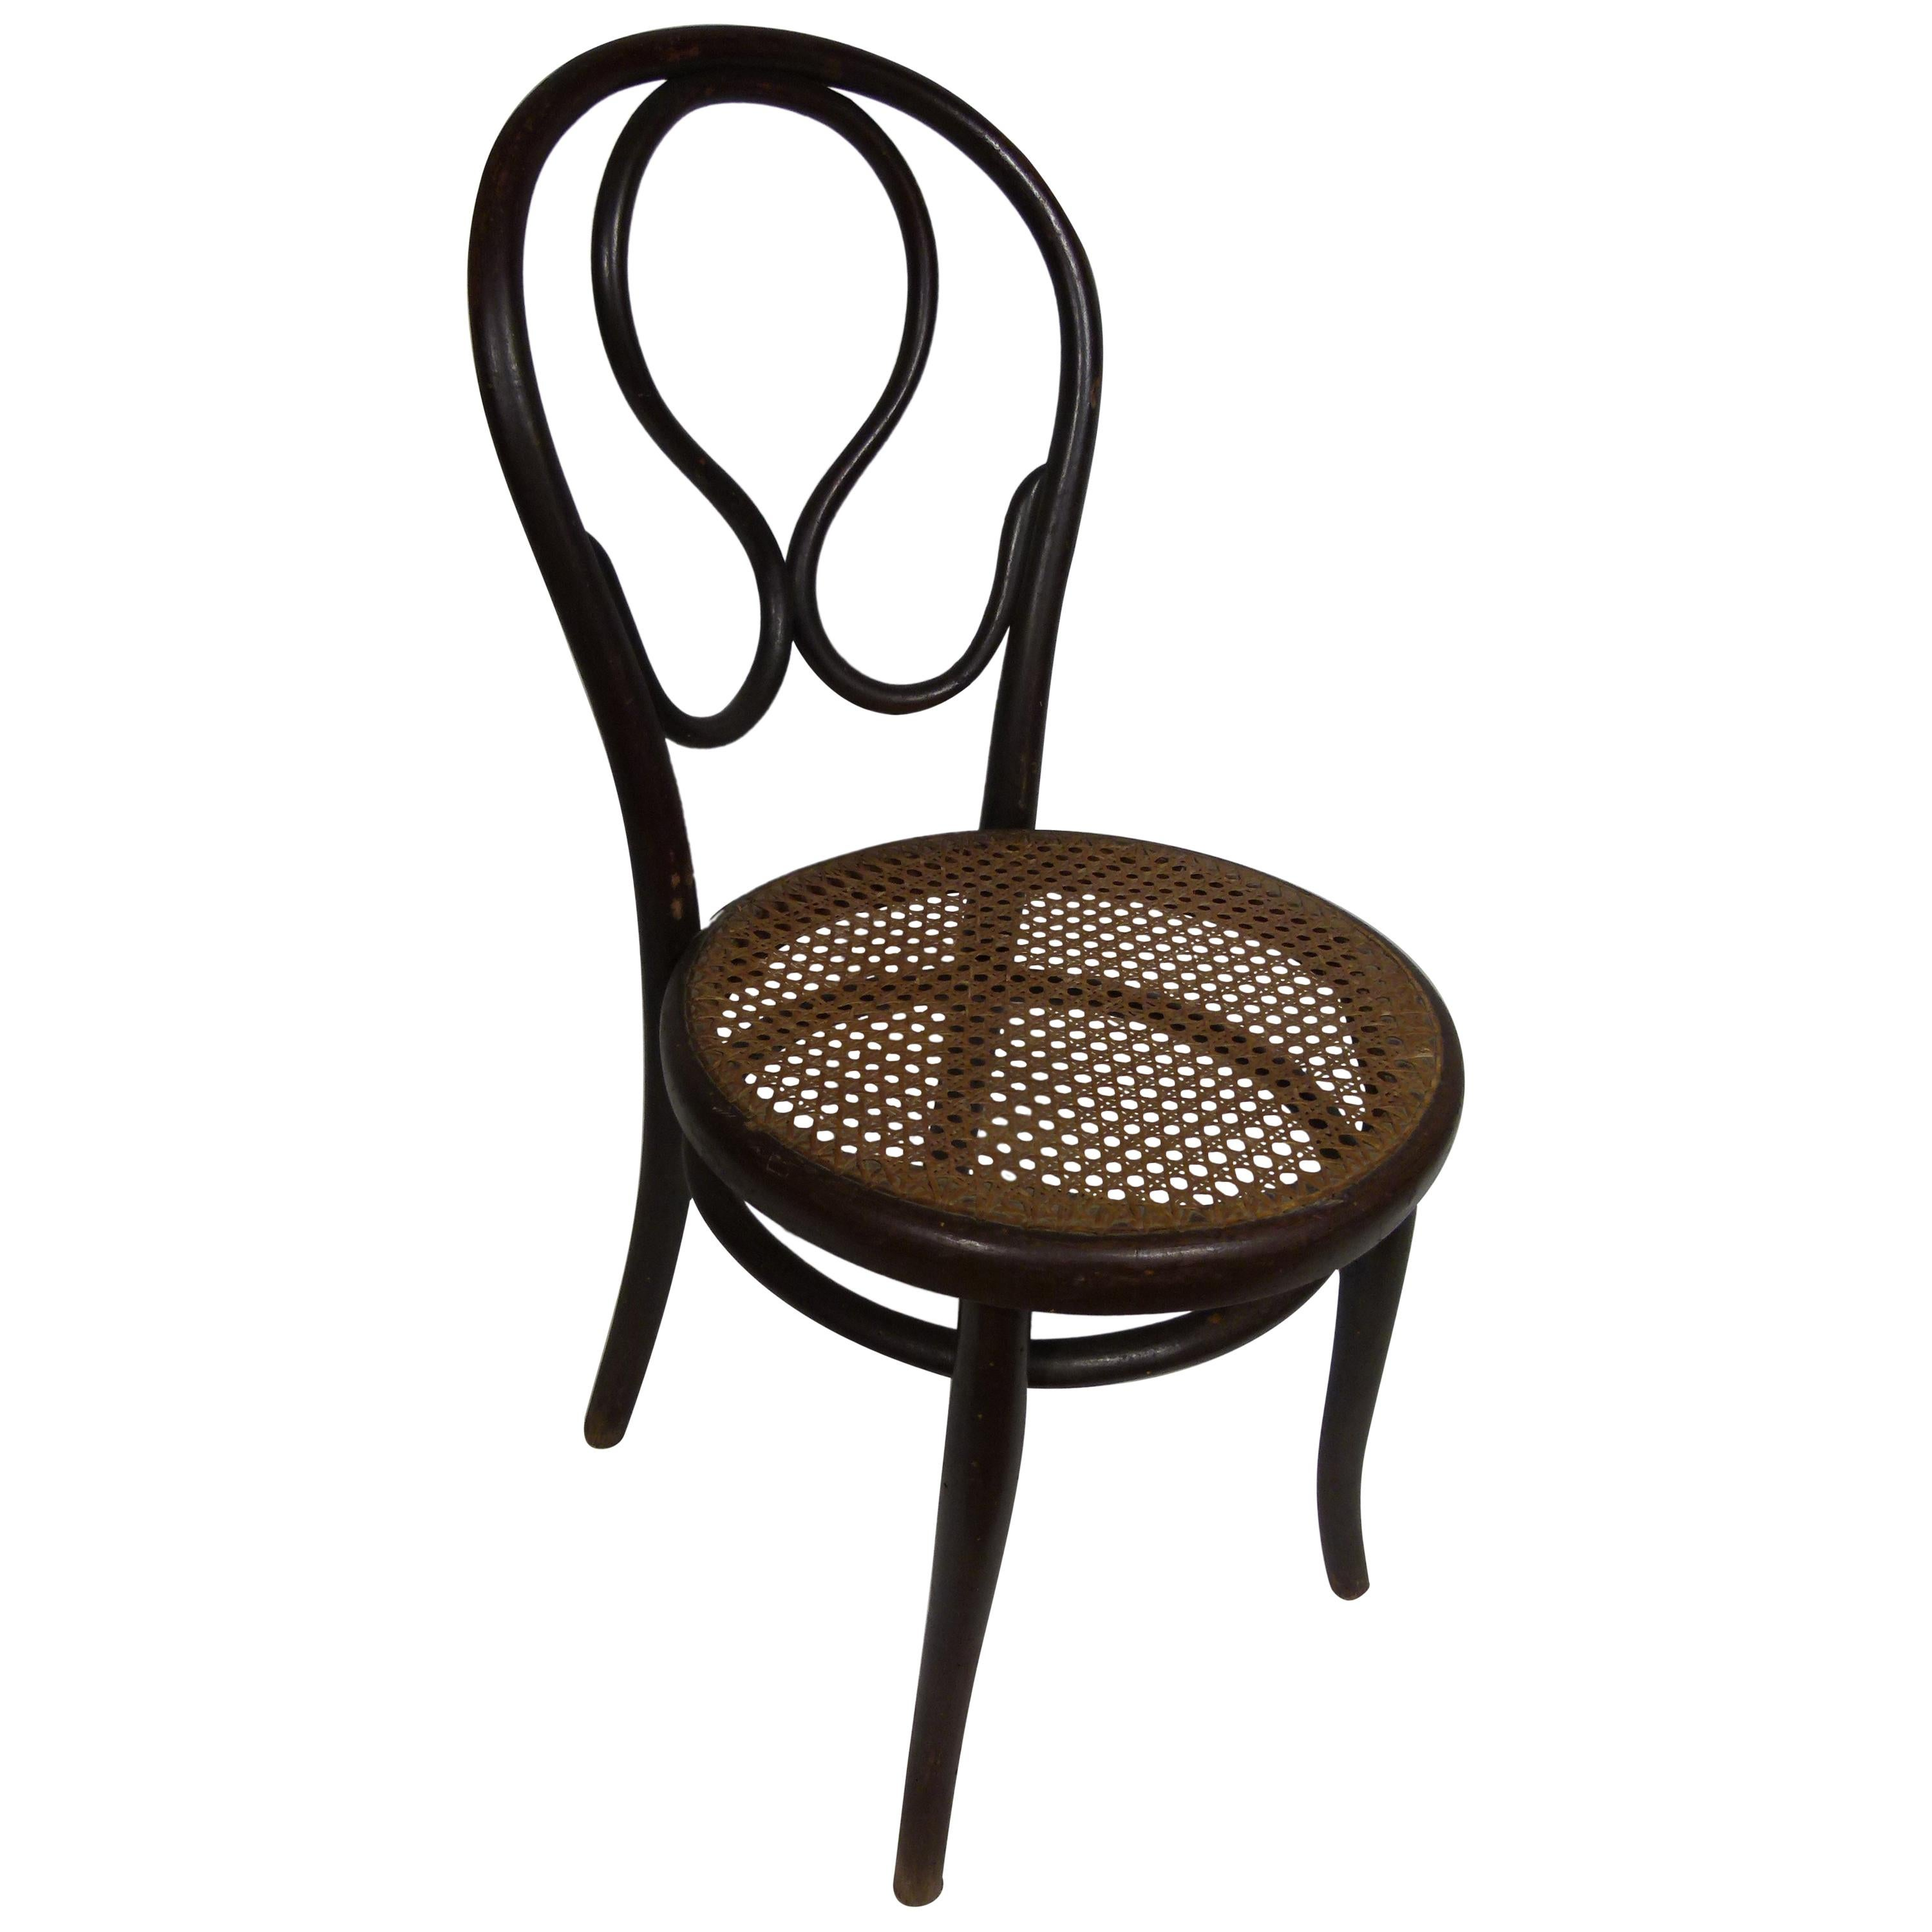 Early 20th Century Michael Thonet Chair